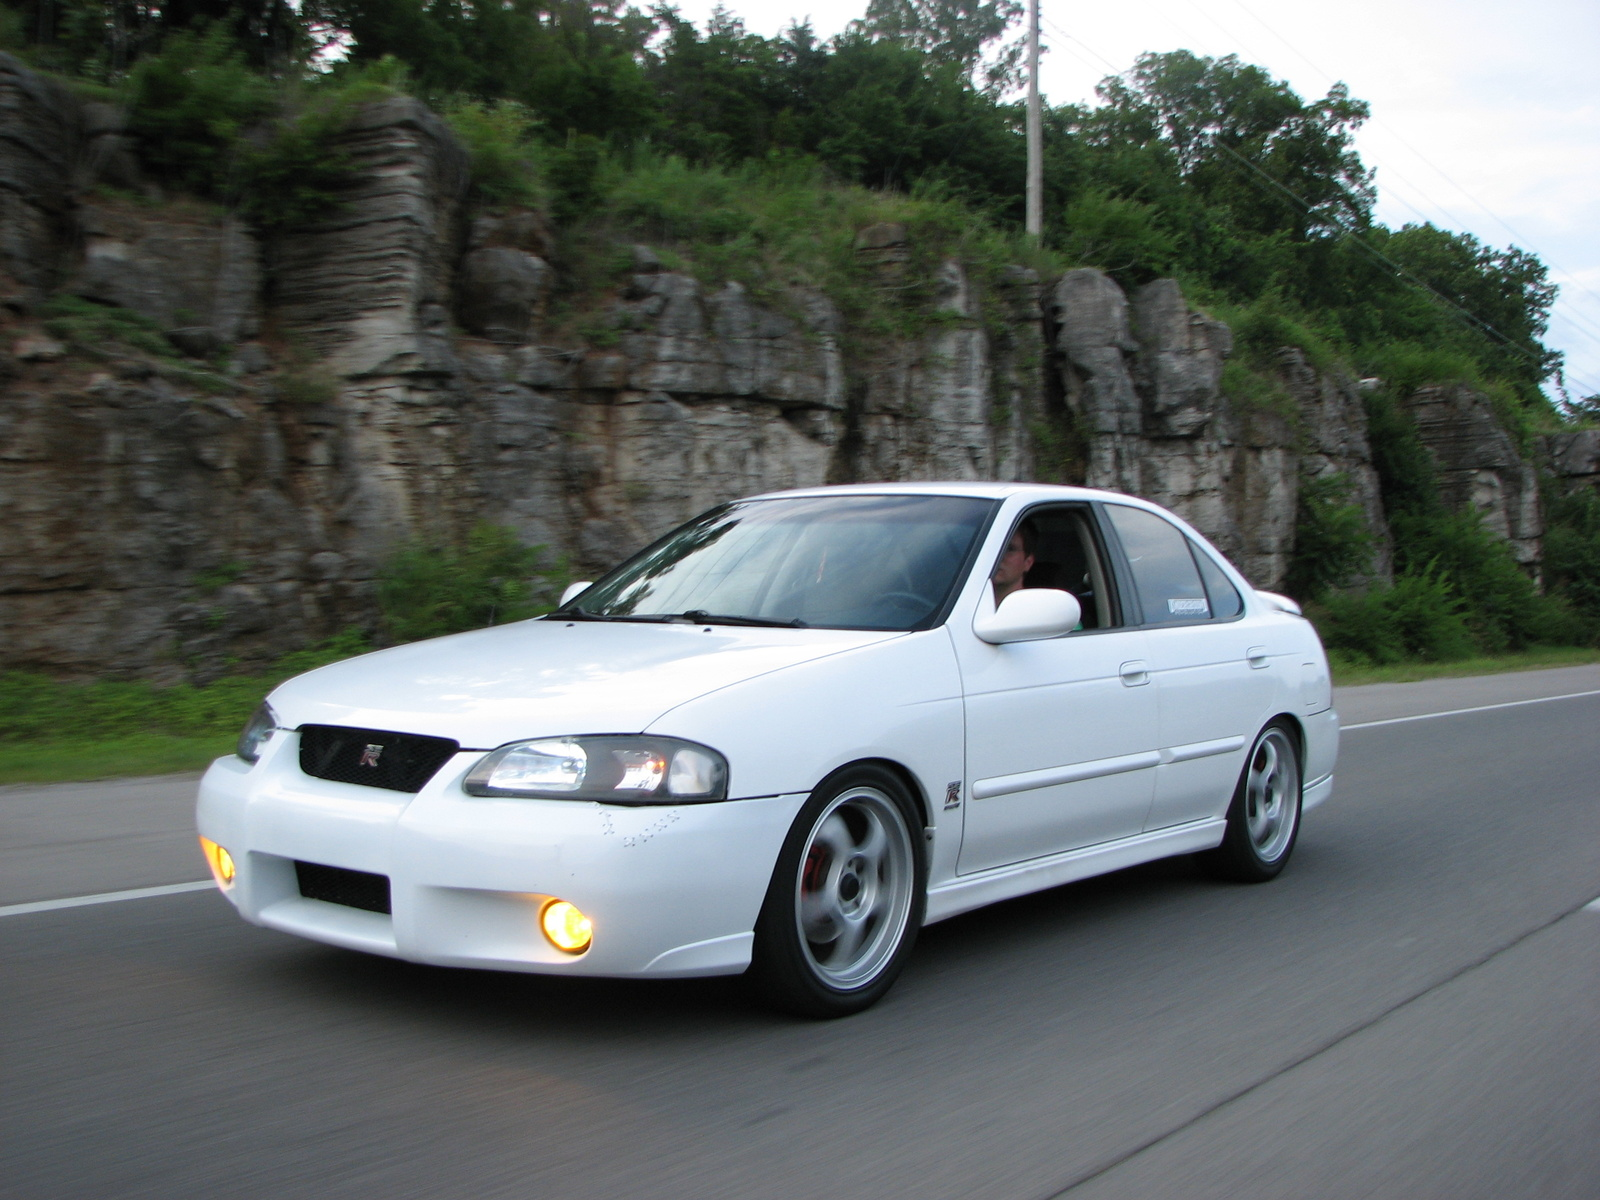 2004 Nissan Sentra SE-R - Car Pictures, Photos, Spy Shoot, Wallpapers ...